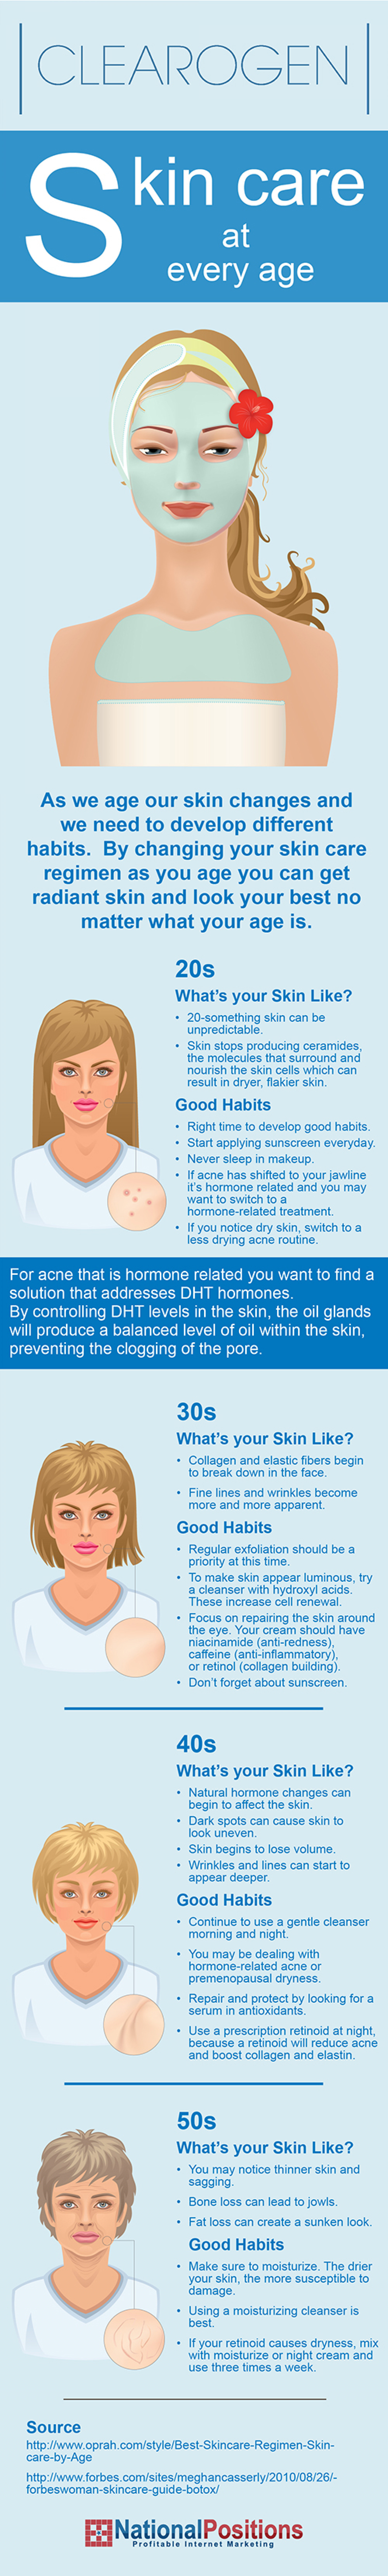 Skin Care at Every Age Infographic